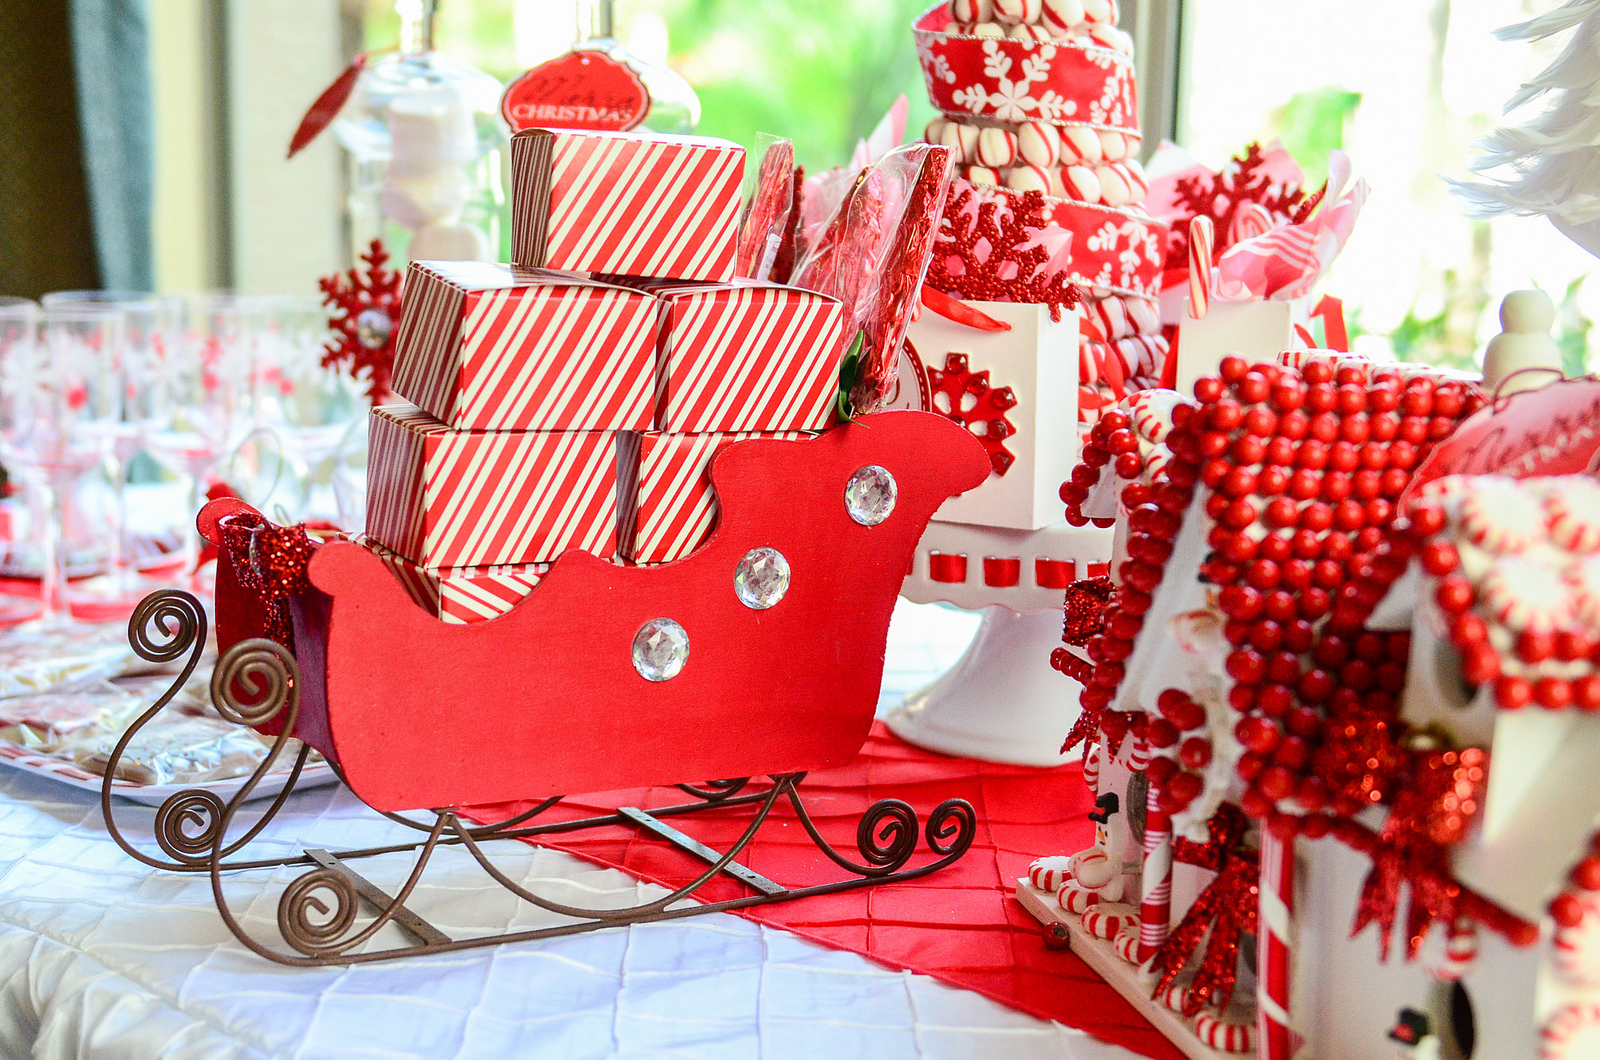 Kids christmas party decorations - Santas Sled With Presents And A White And Red Gingerbread House For A Kids Christmas Party